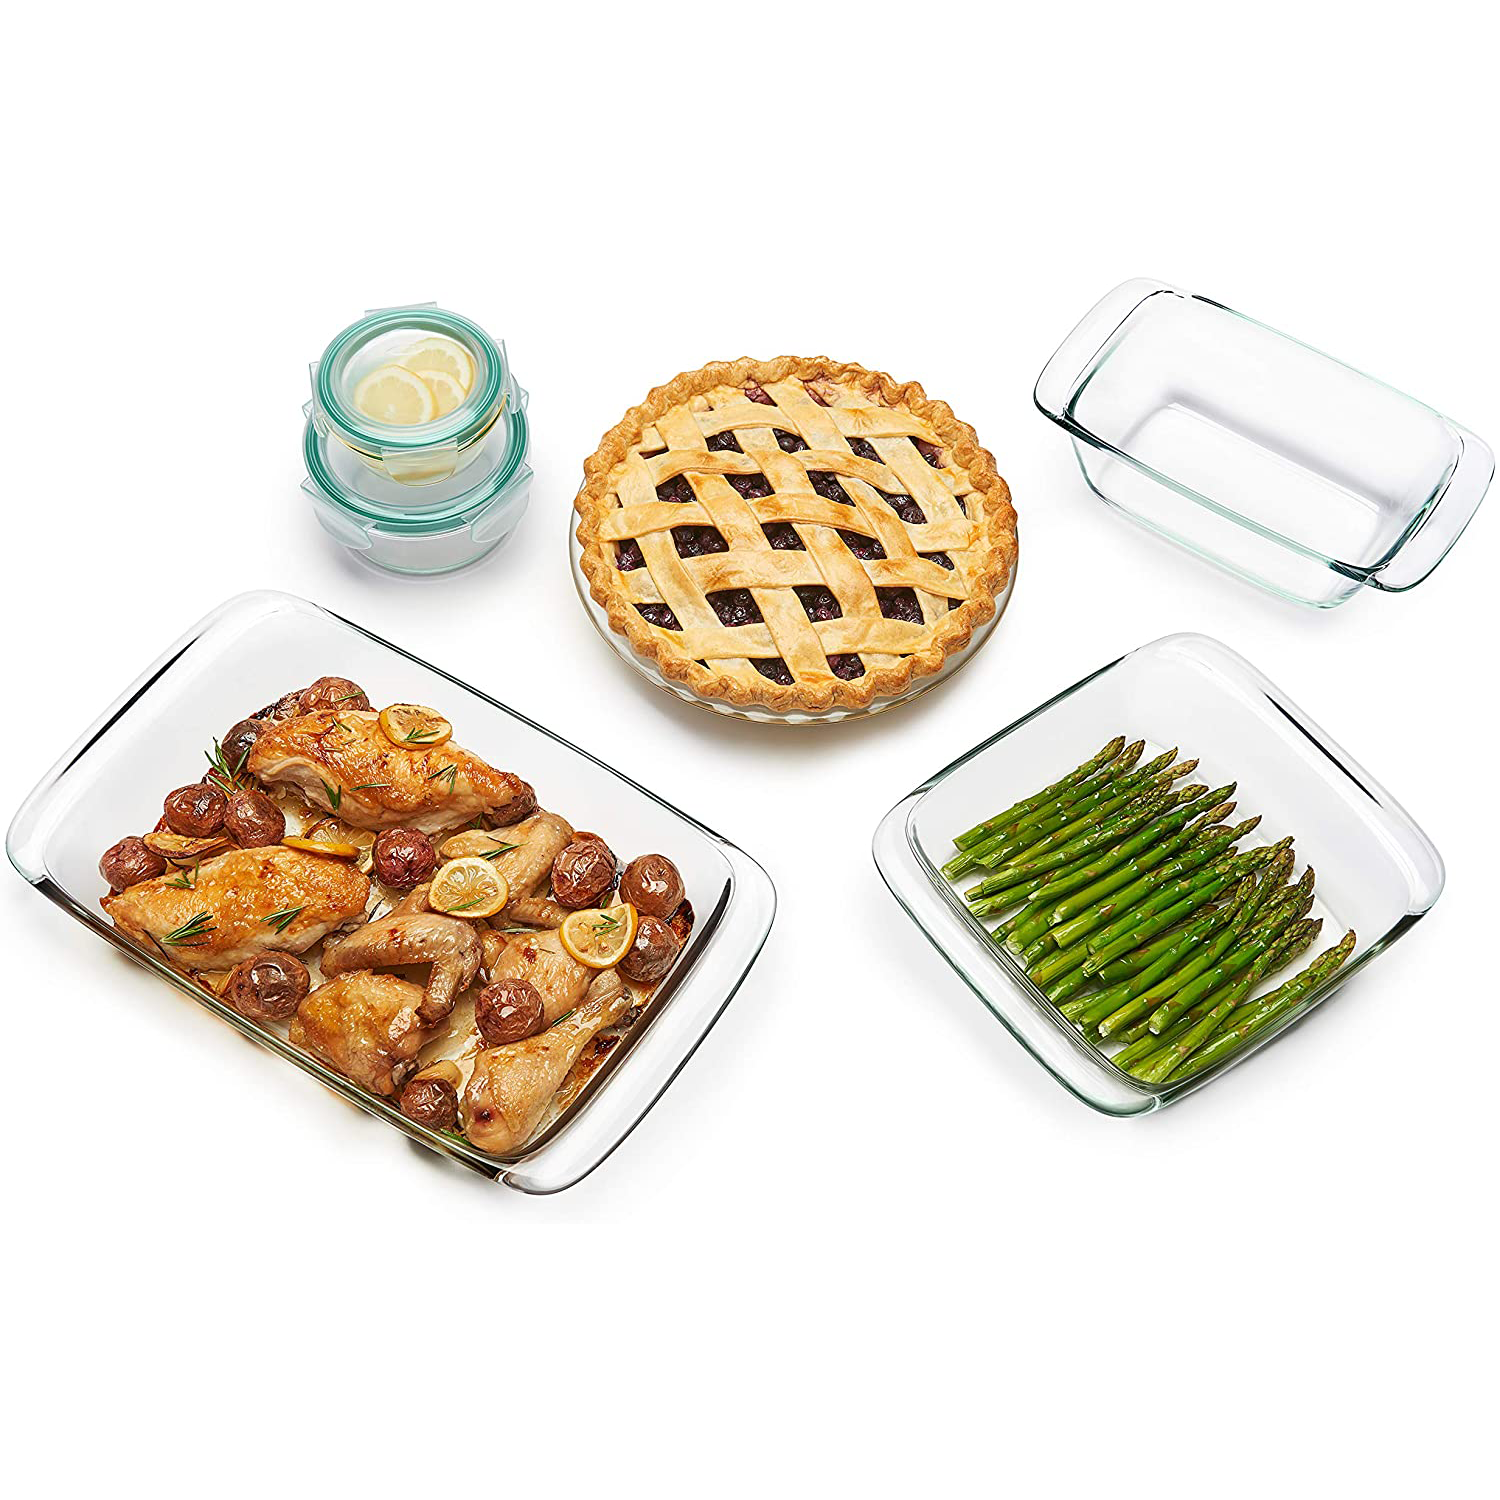 OXO Good Grips 8 Piece Freezer-to-Oven Safe Glass Bake with roasted chicken, pie, and asparagus spears on white